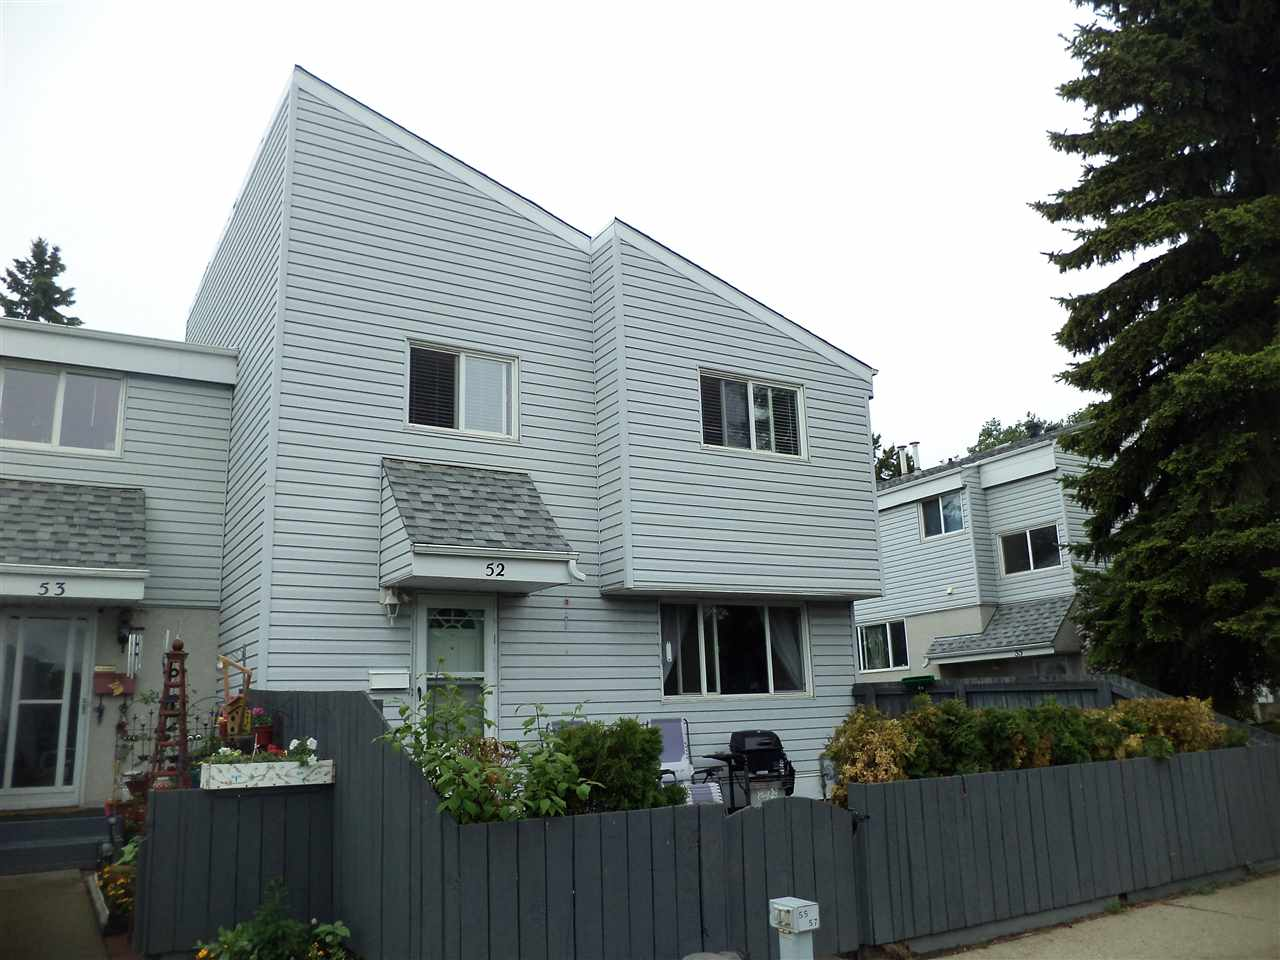 Main Photo: 52 MCLEOD Place in Edmonton: Zone 02 Townhouse for sale : MLS(r) # E4067268